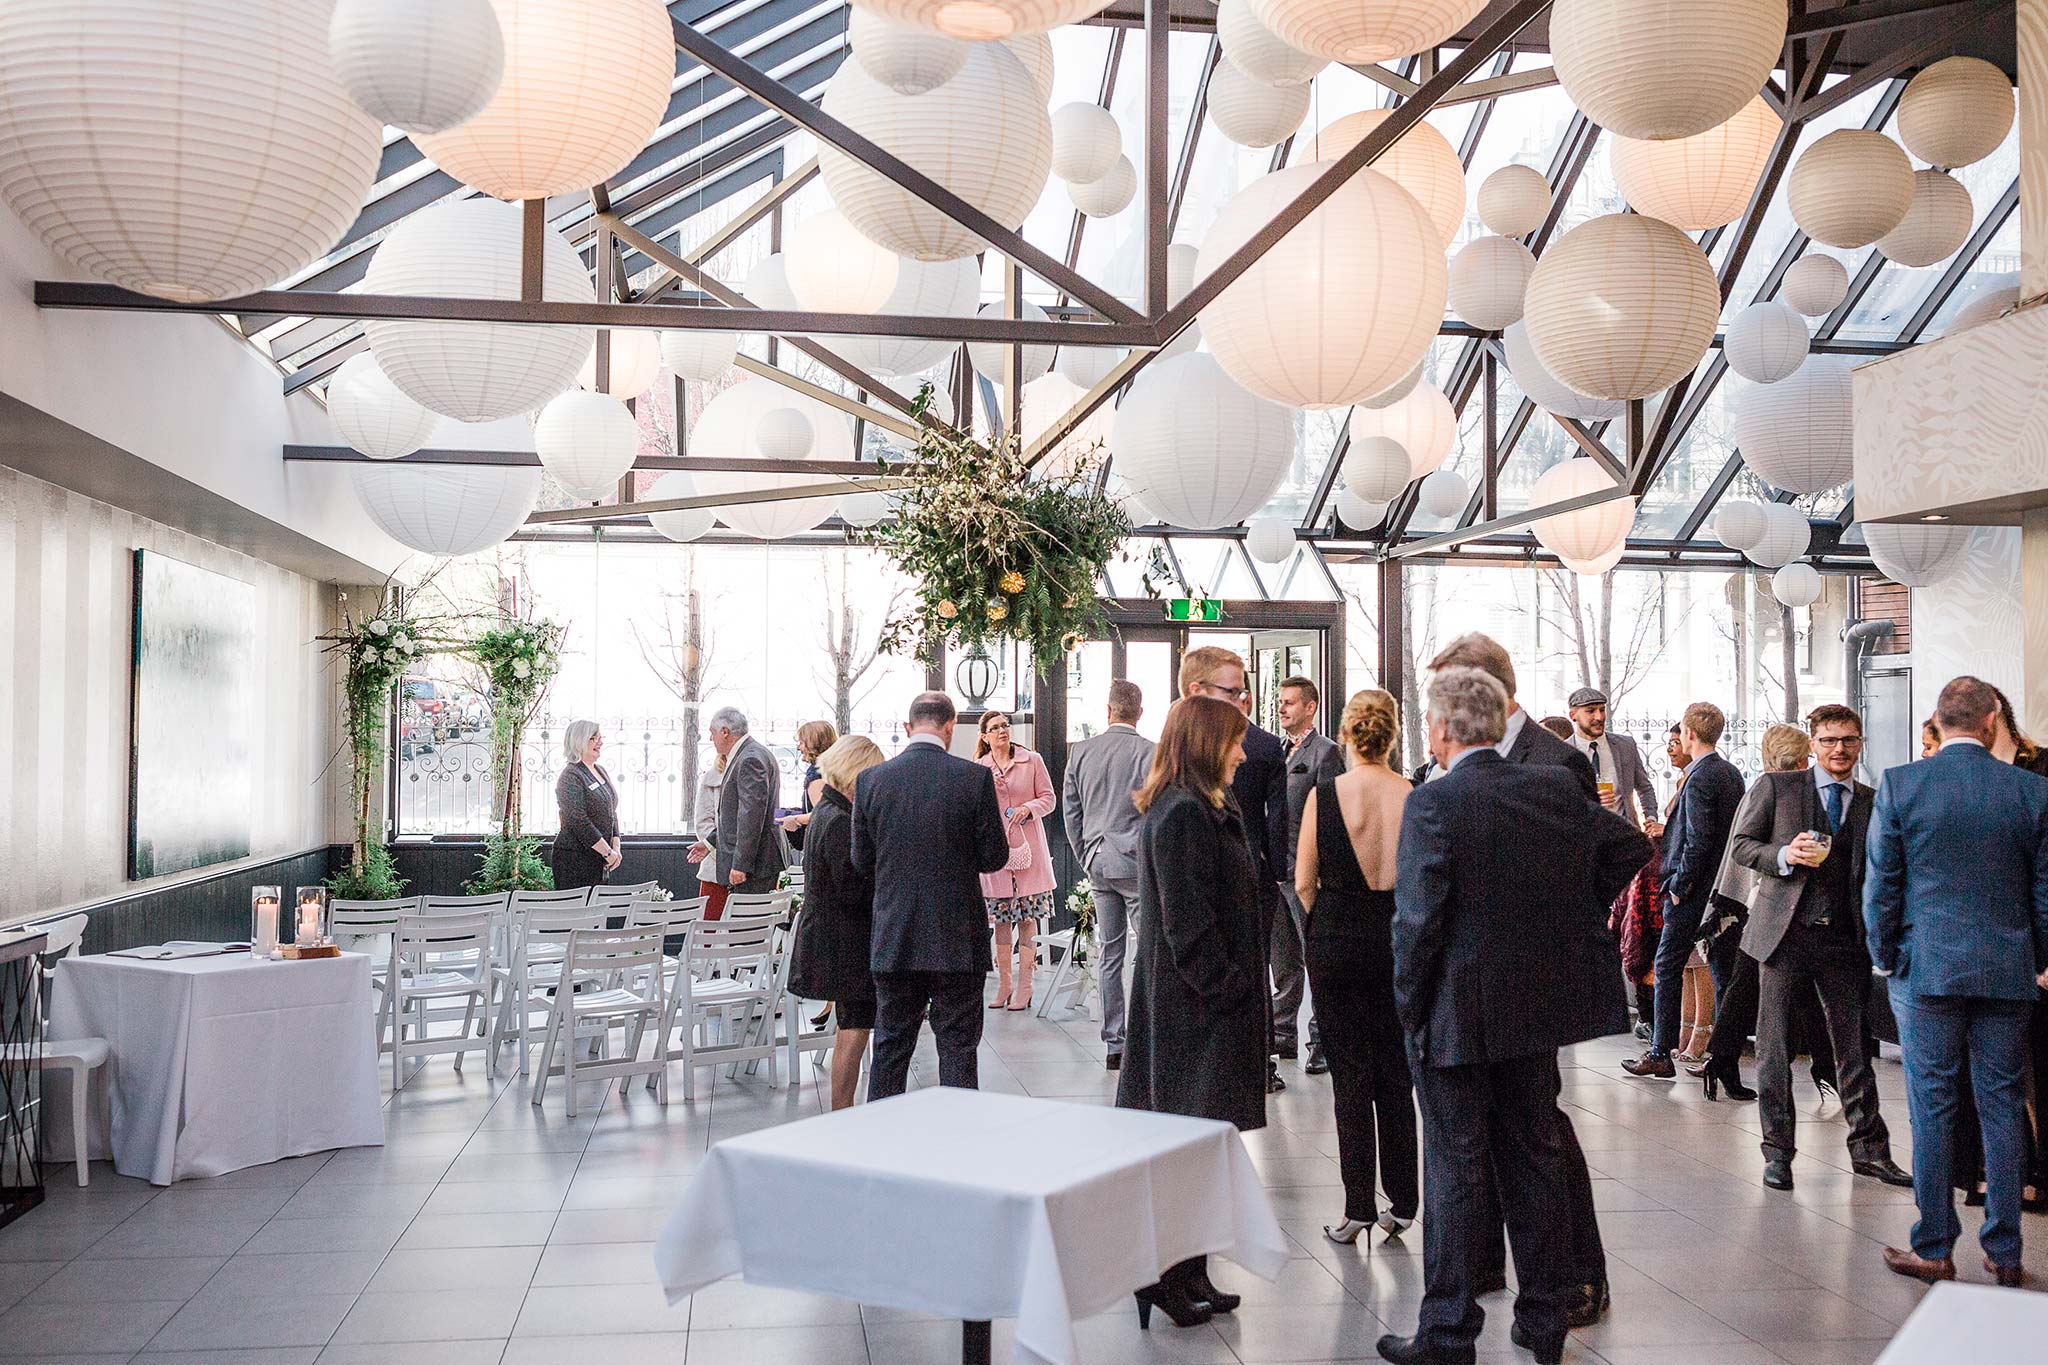 melbourne-fitzroy-st-andrews-conservatory-pumphouse-wedding-venue-ceremony-guests